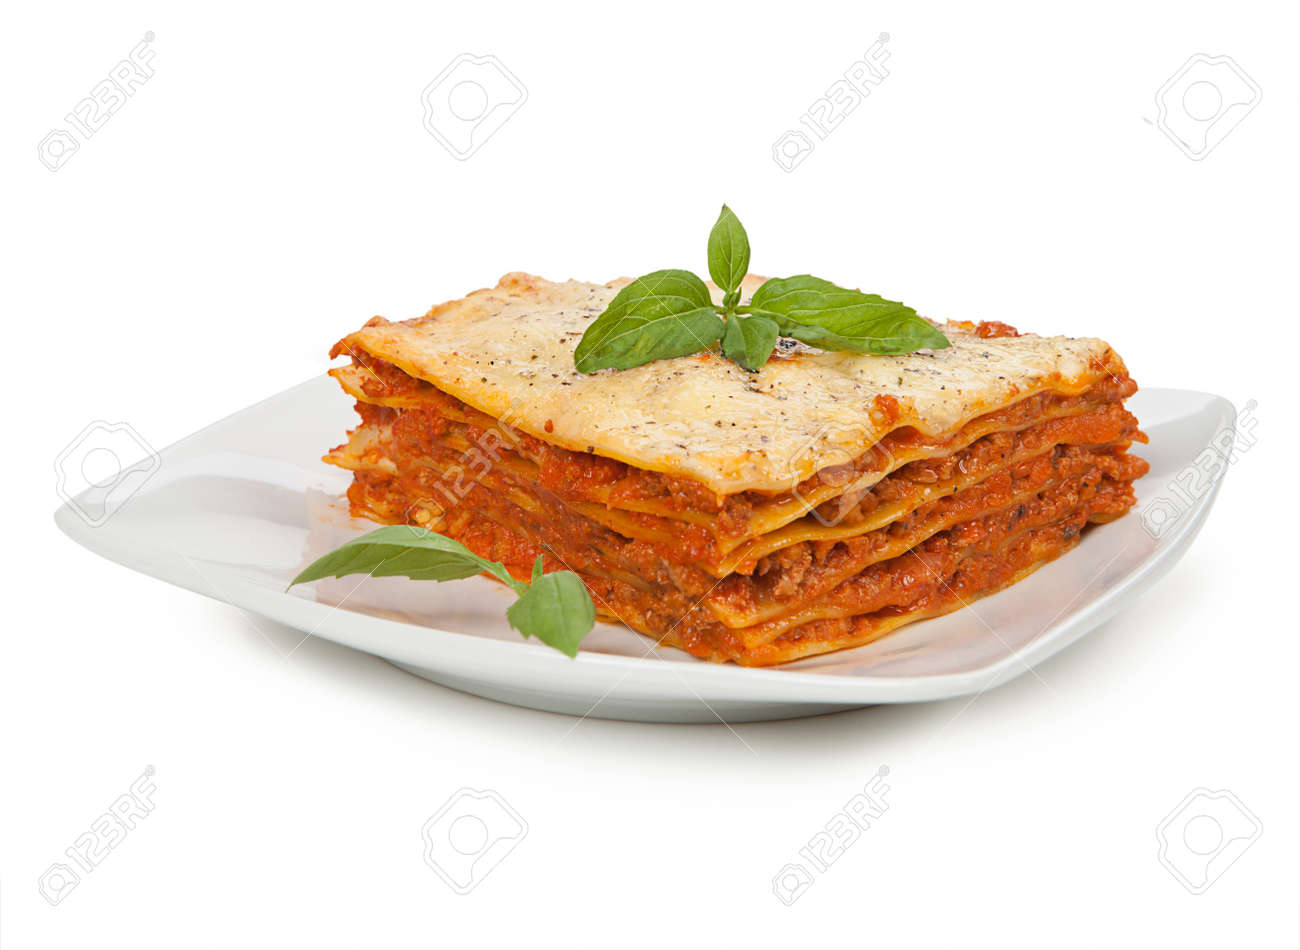 Billedresultat for a plate of lasagna